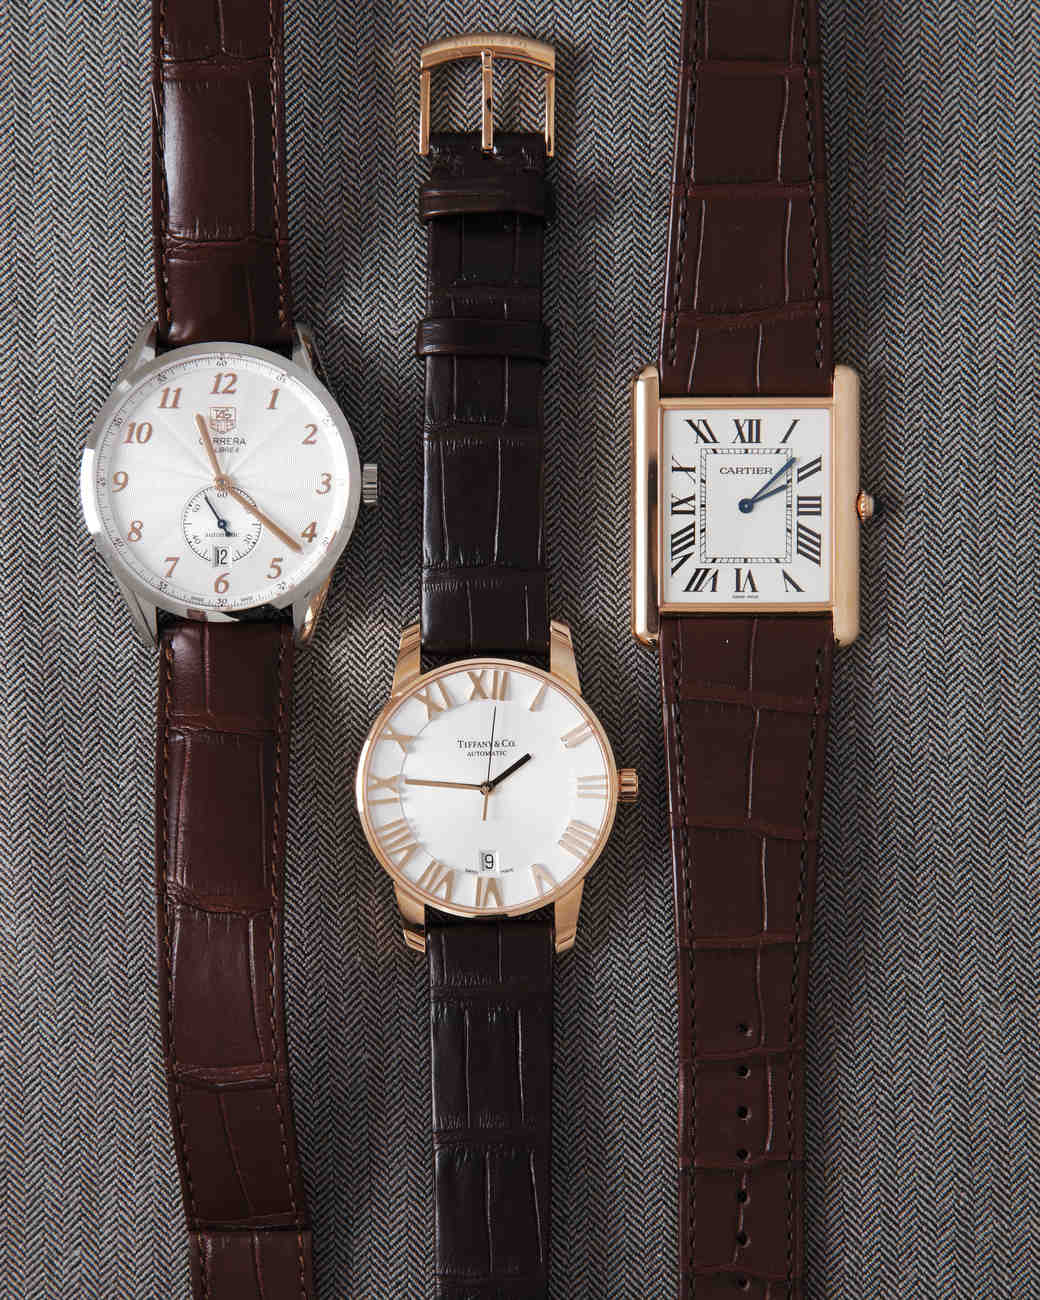 watches-2-mmsw108757.jpg